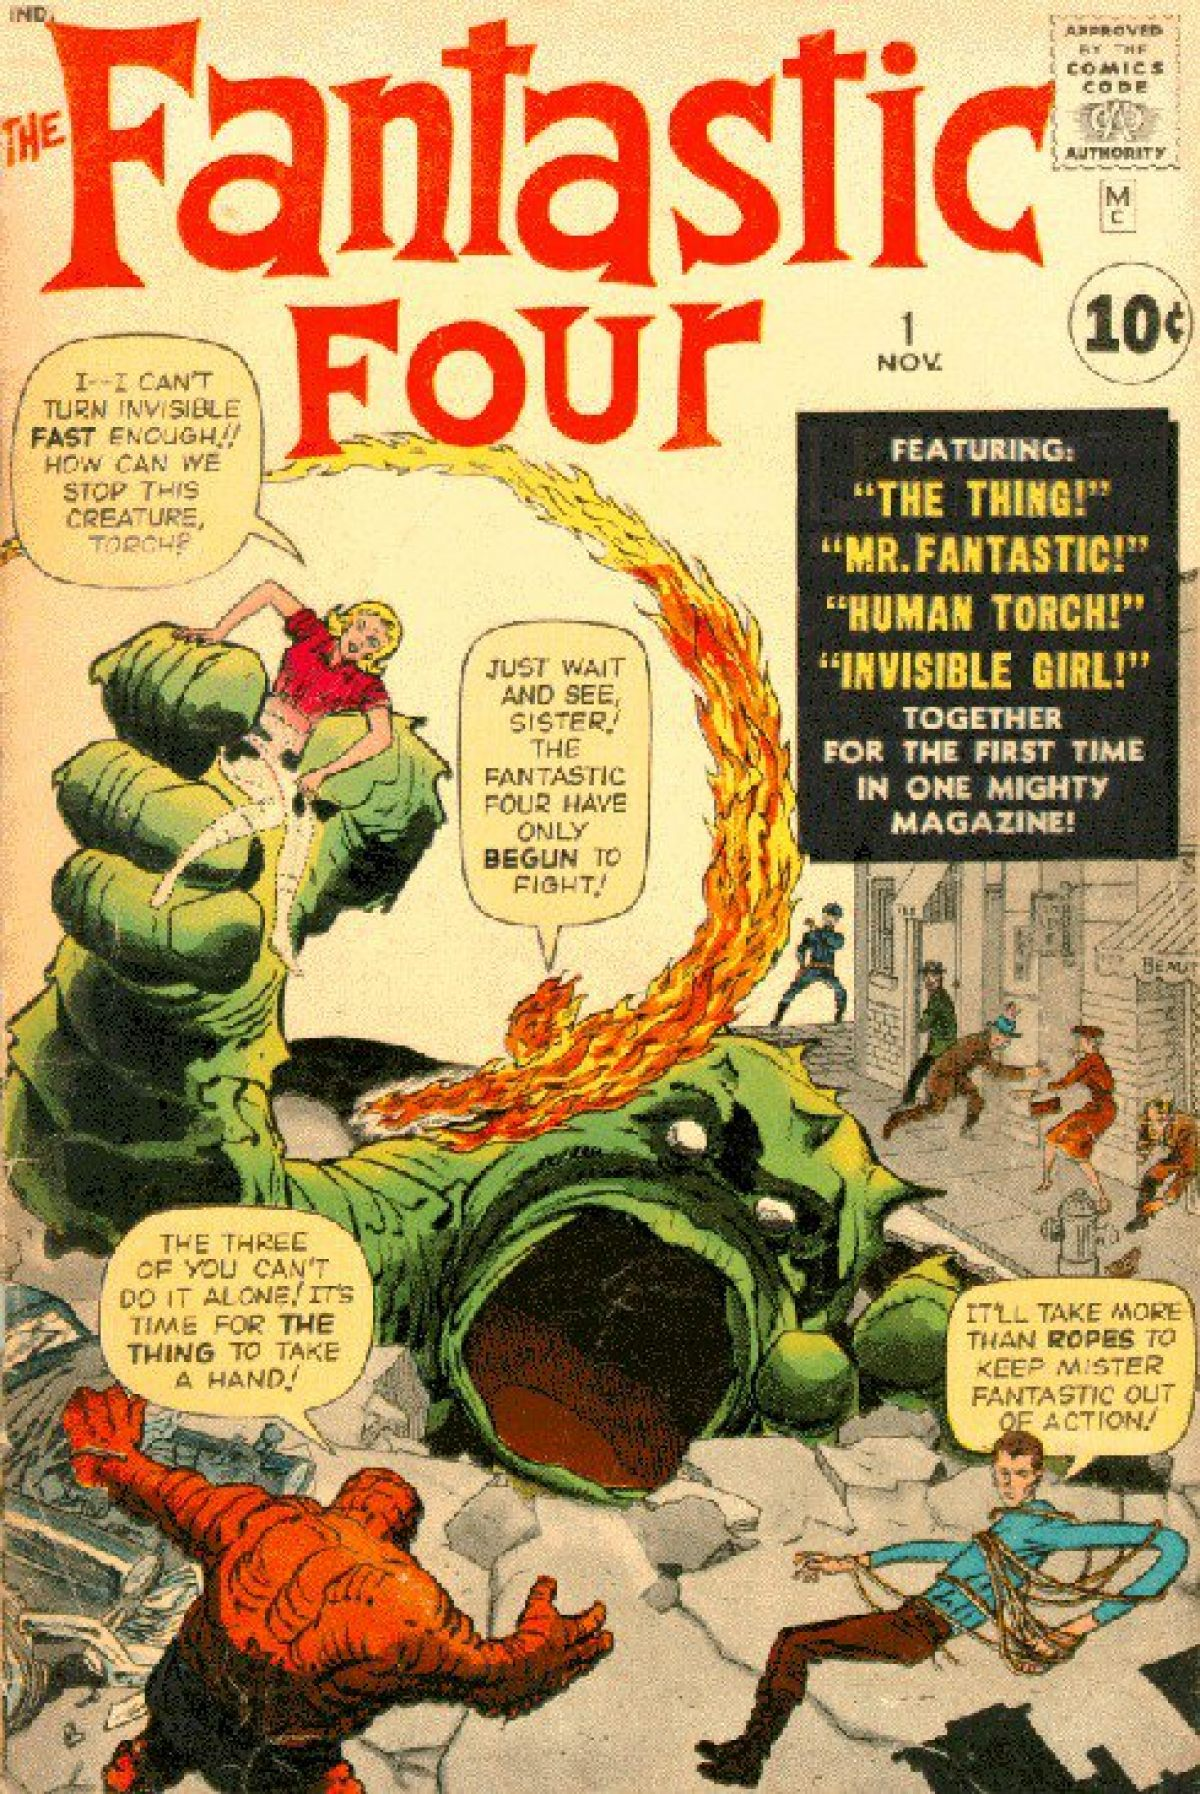 ff1cover_1200_1794_81_s